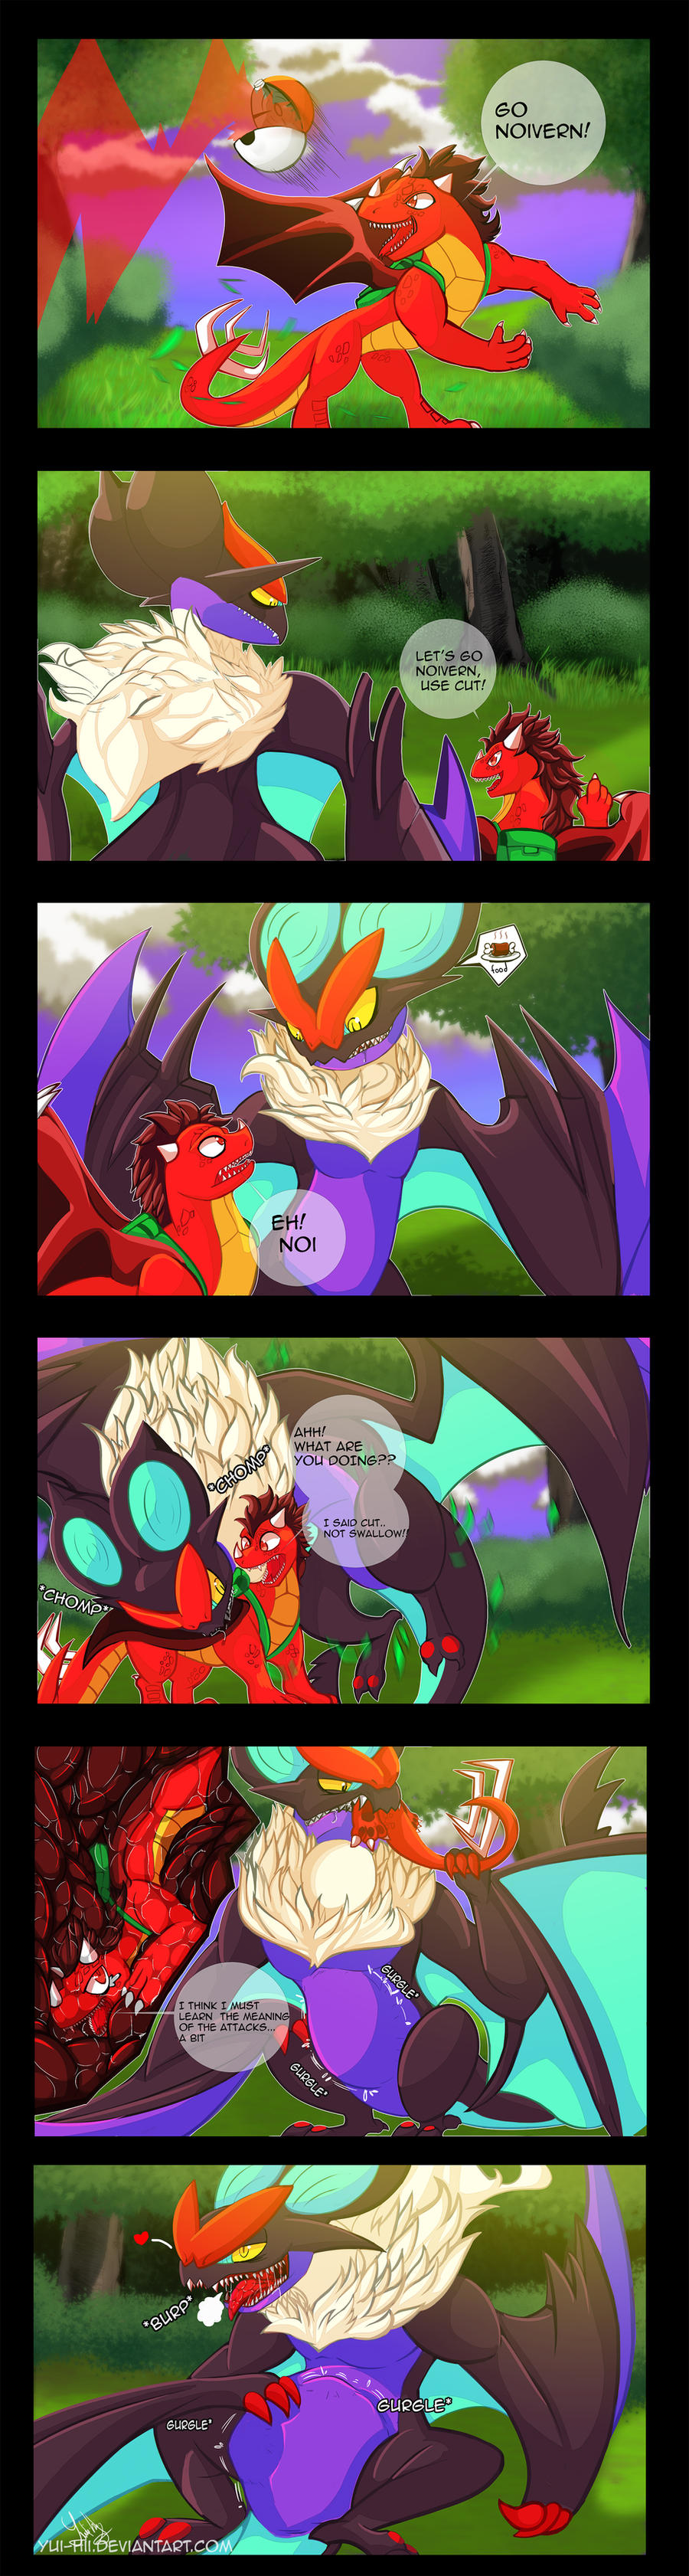 how to train your dragon 2 porn comic